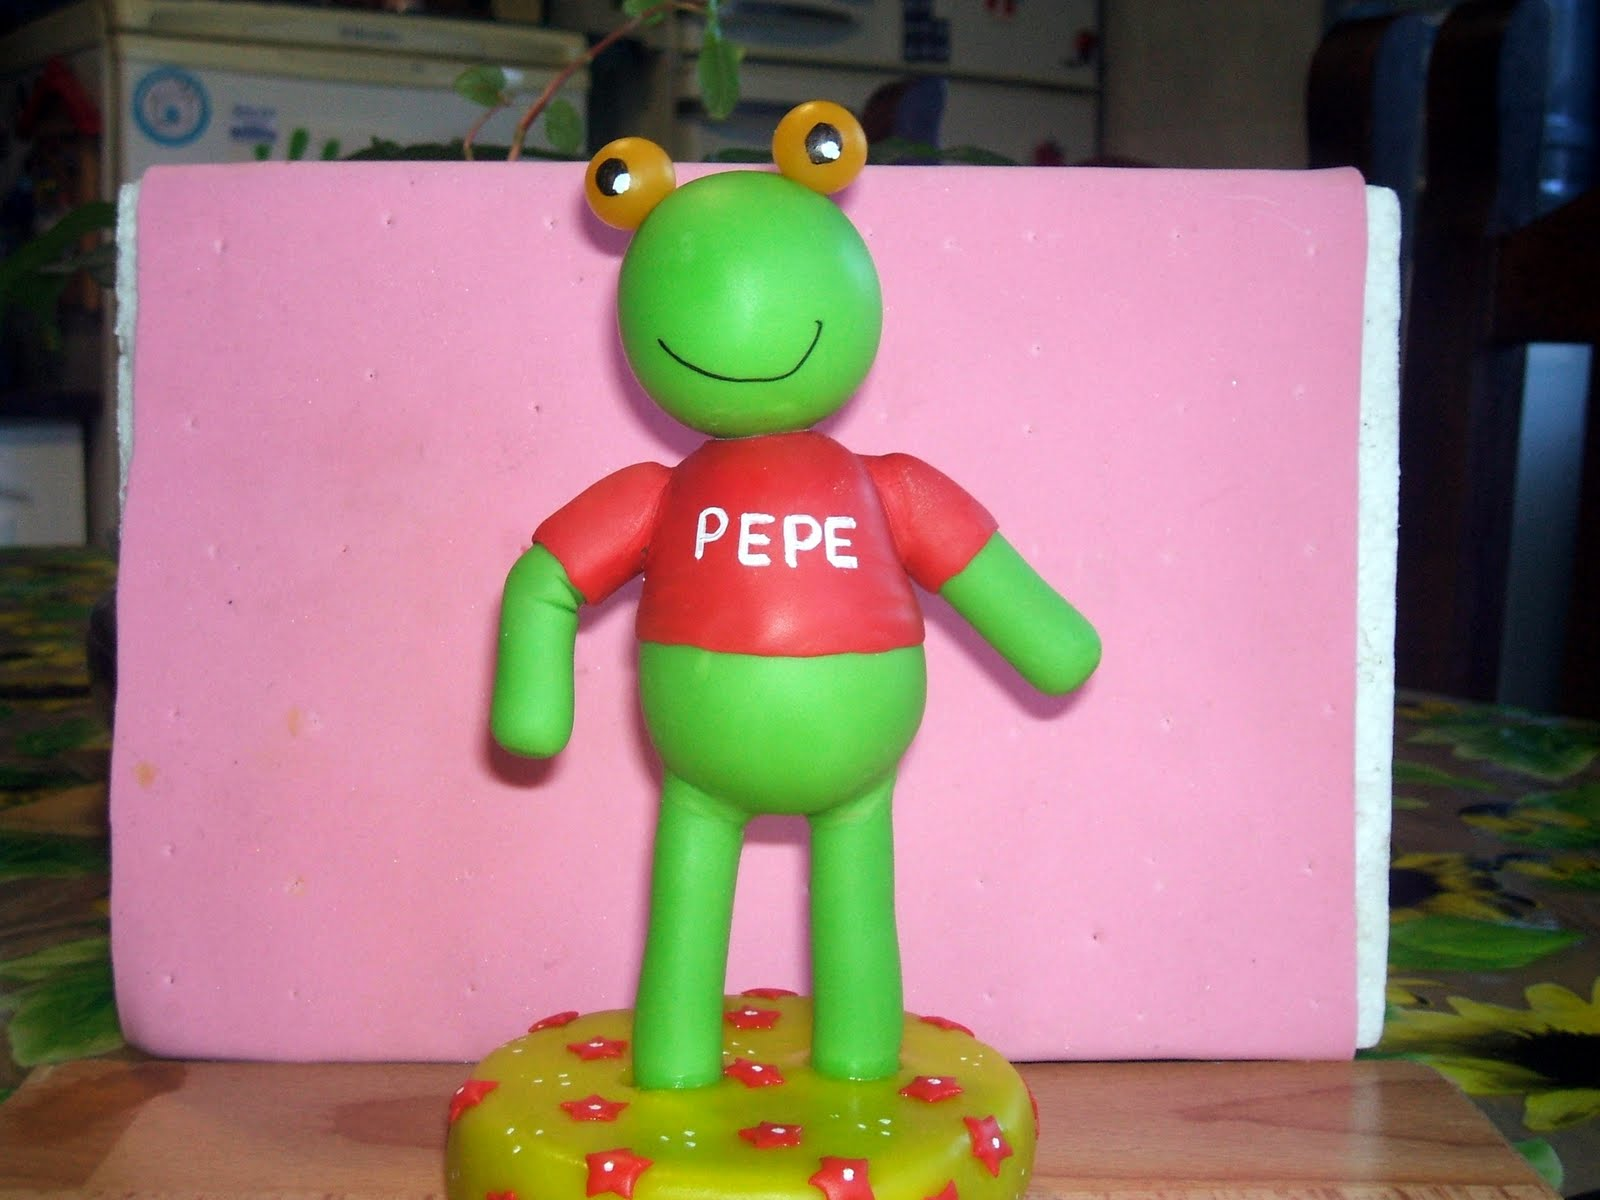 sapo pepe 5 - photo #38